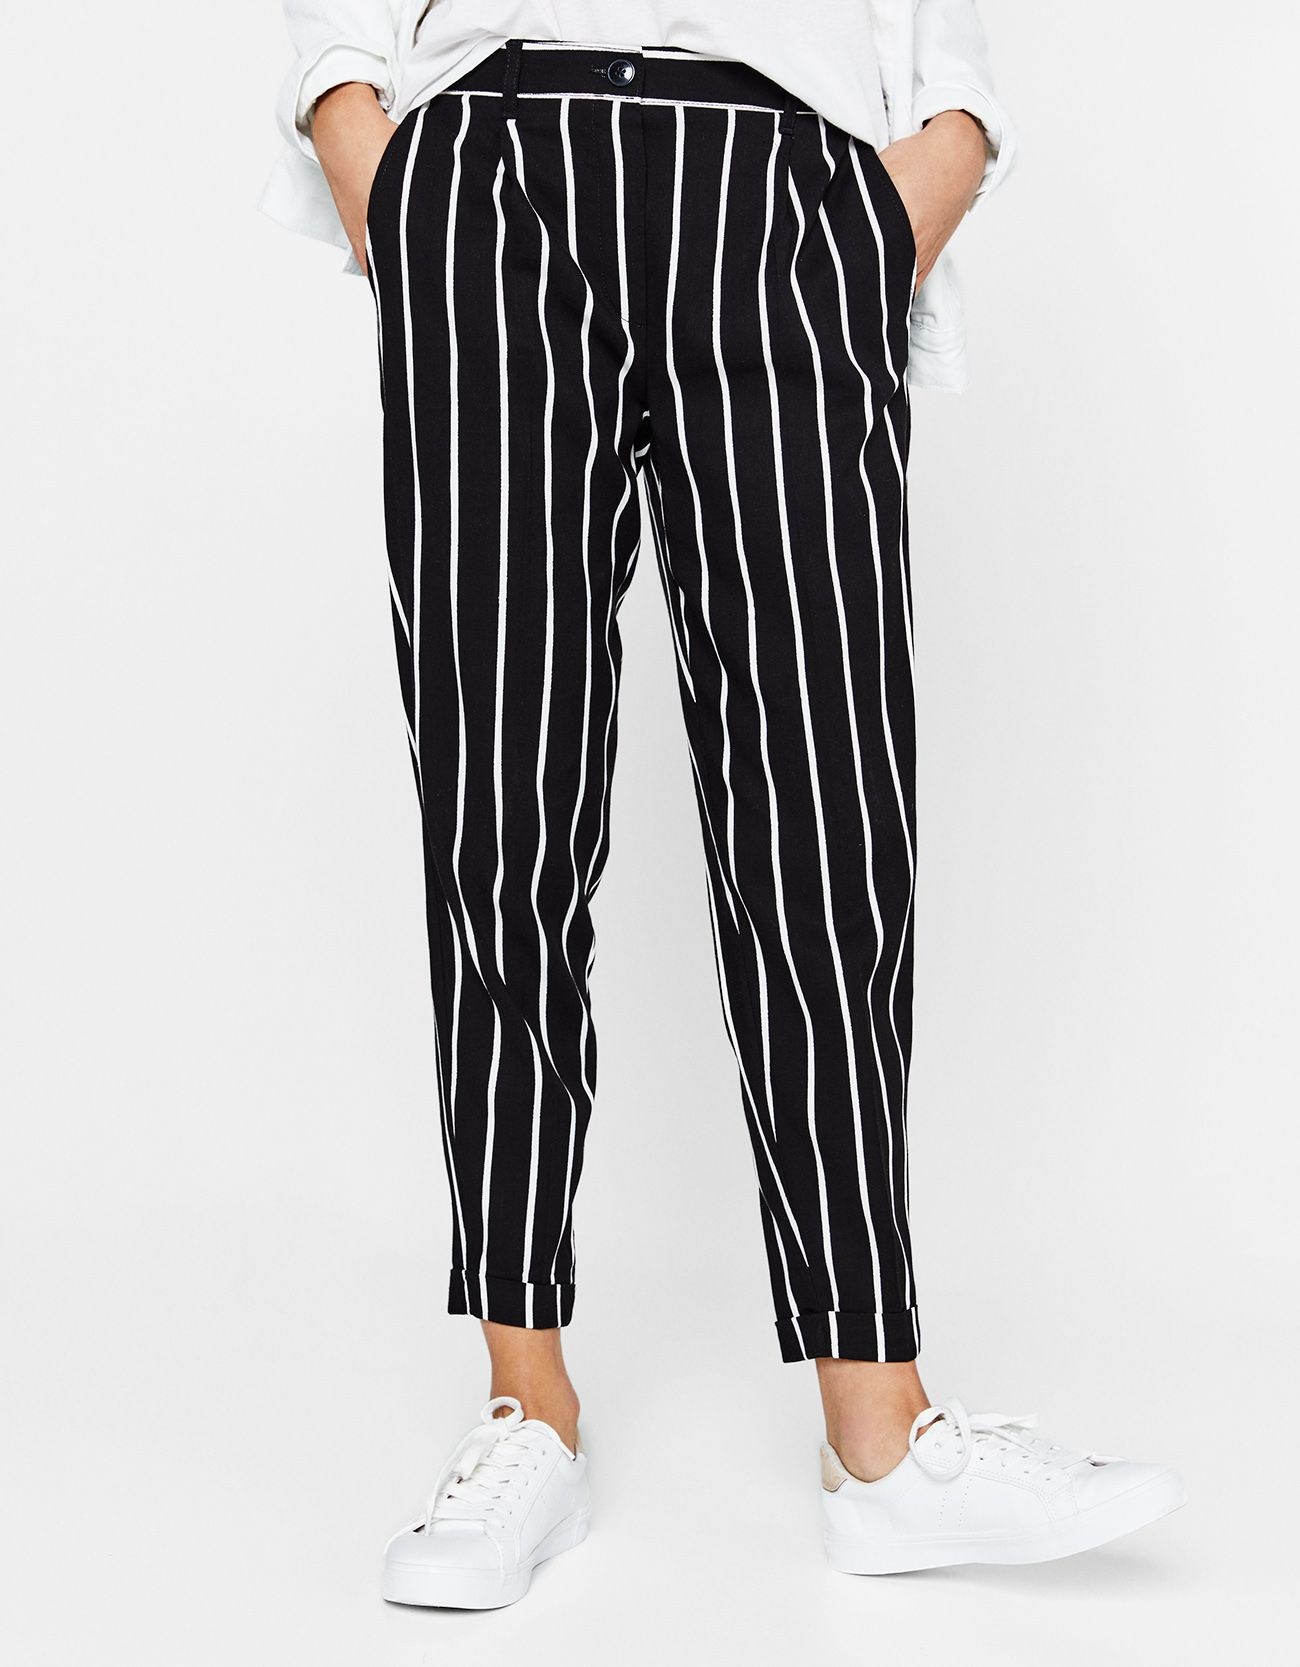 5e142fd0801e Tailored pleated jogging trousers. Discover this and many more items in  Bershka with new products every week